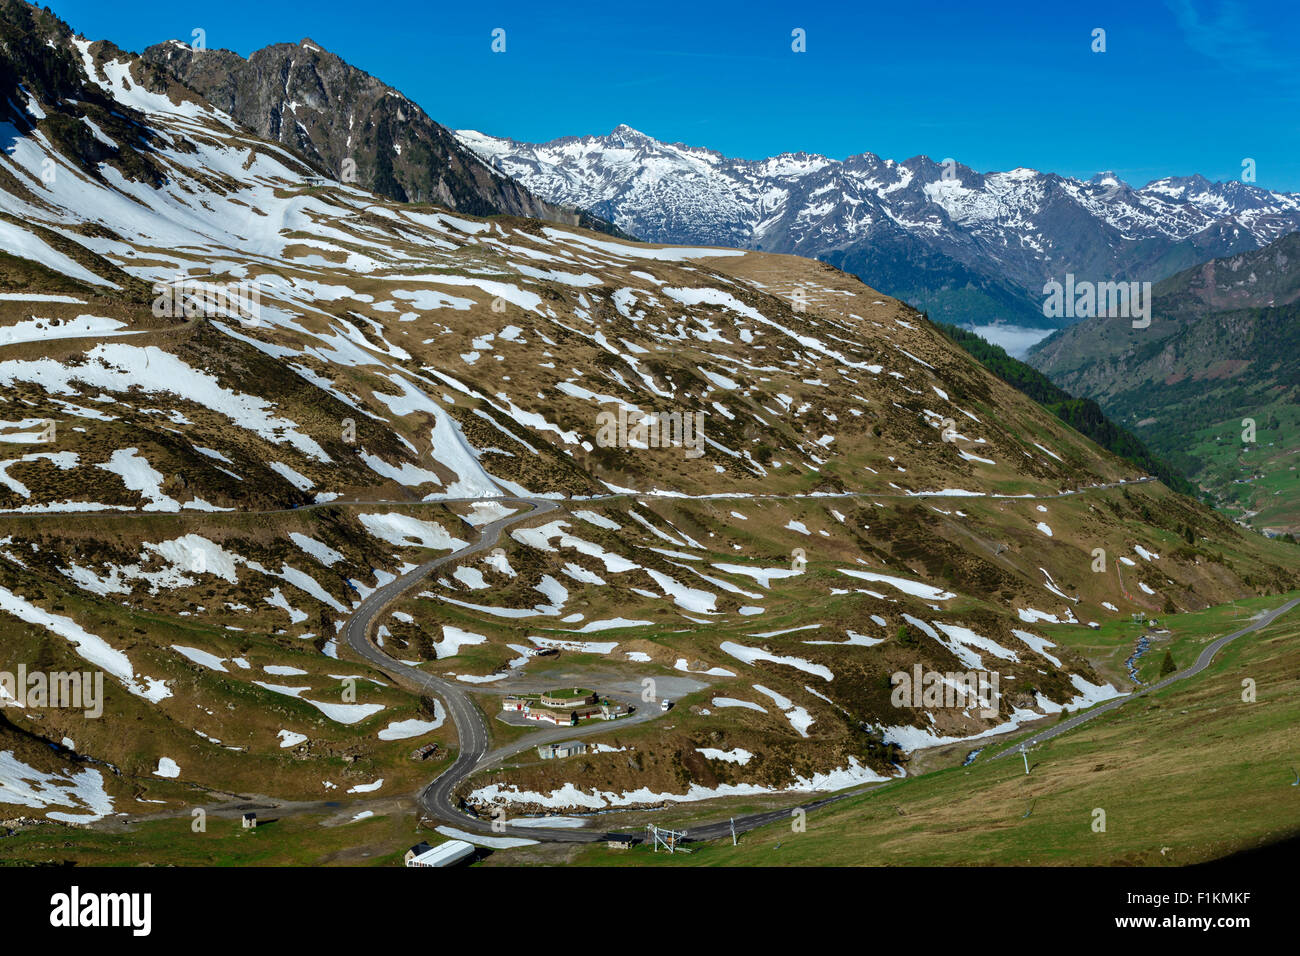 The Valley Of Bareges, Road to The Pic Du Midi and Col Du Tourmalet, Hautes Pyrenees, France - Stock Image